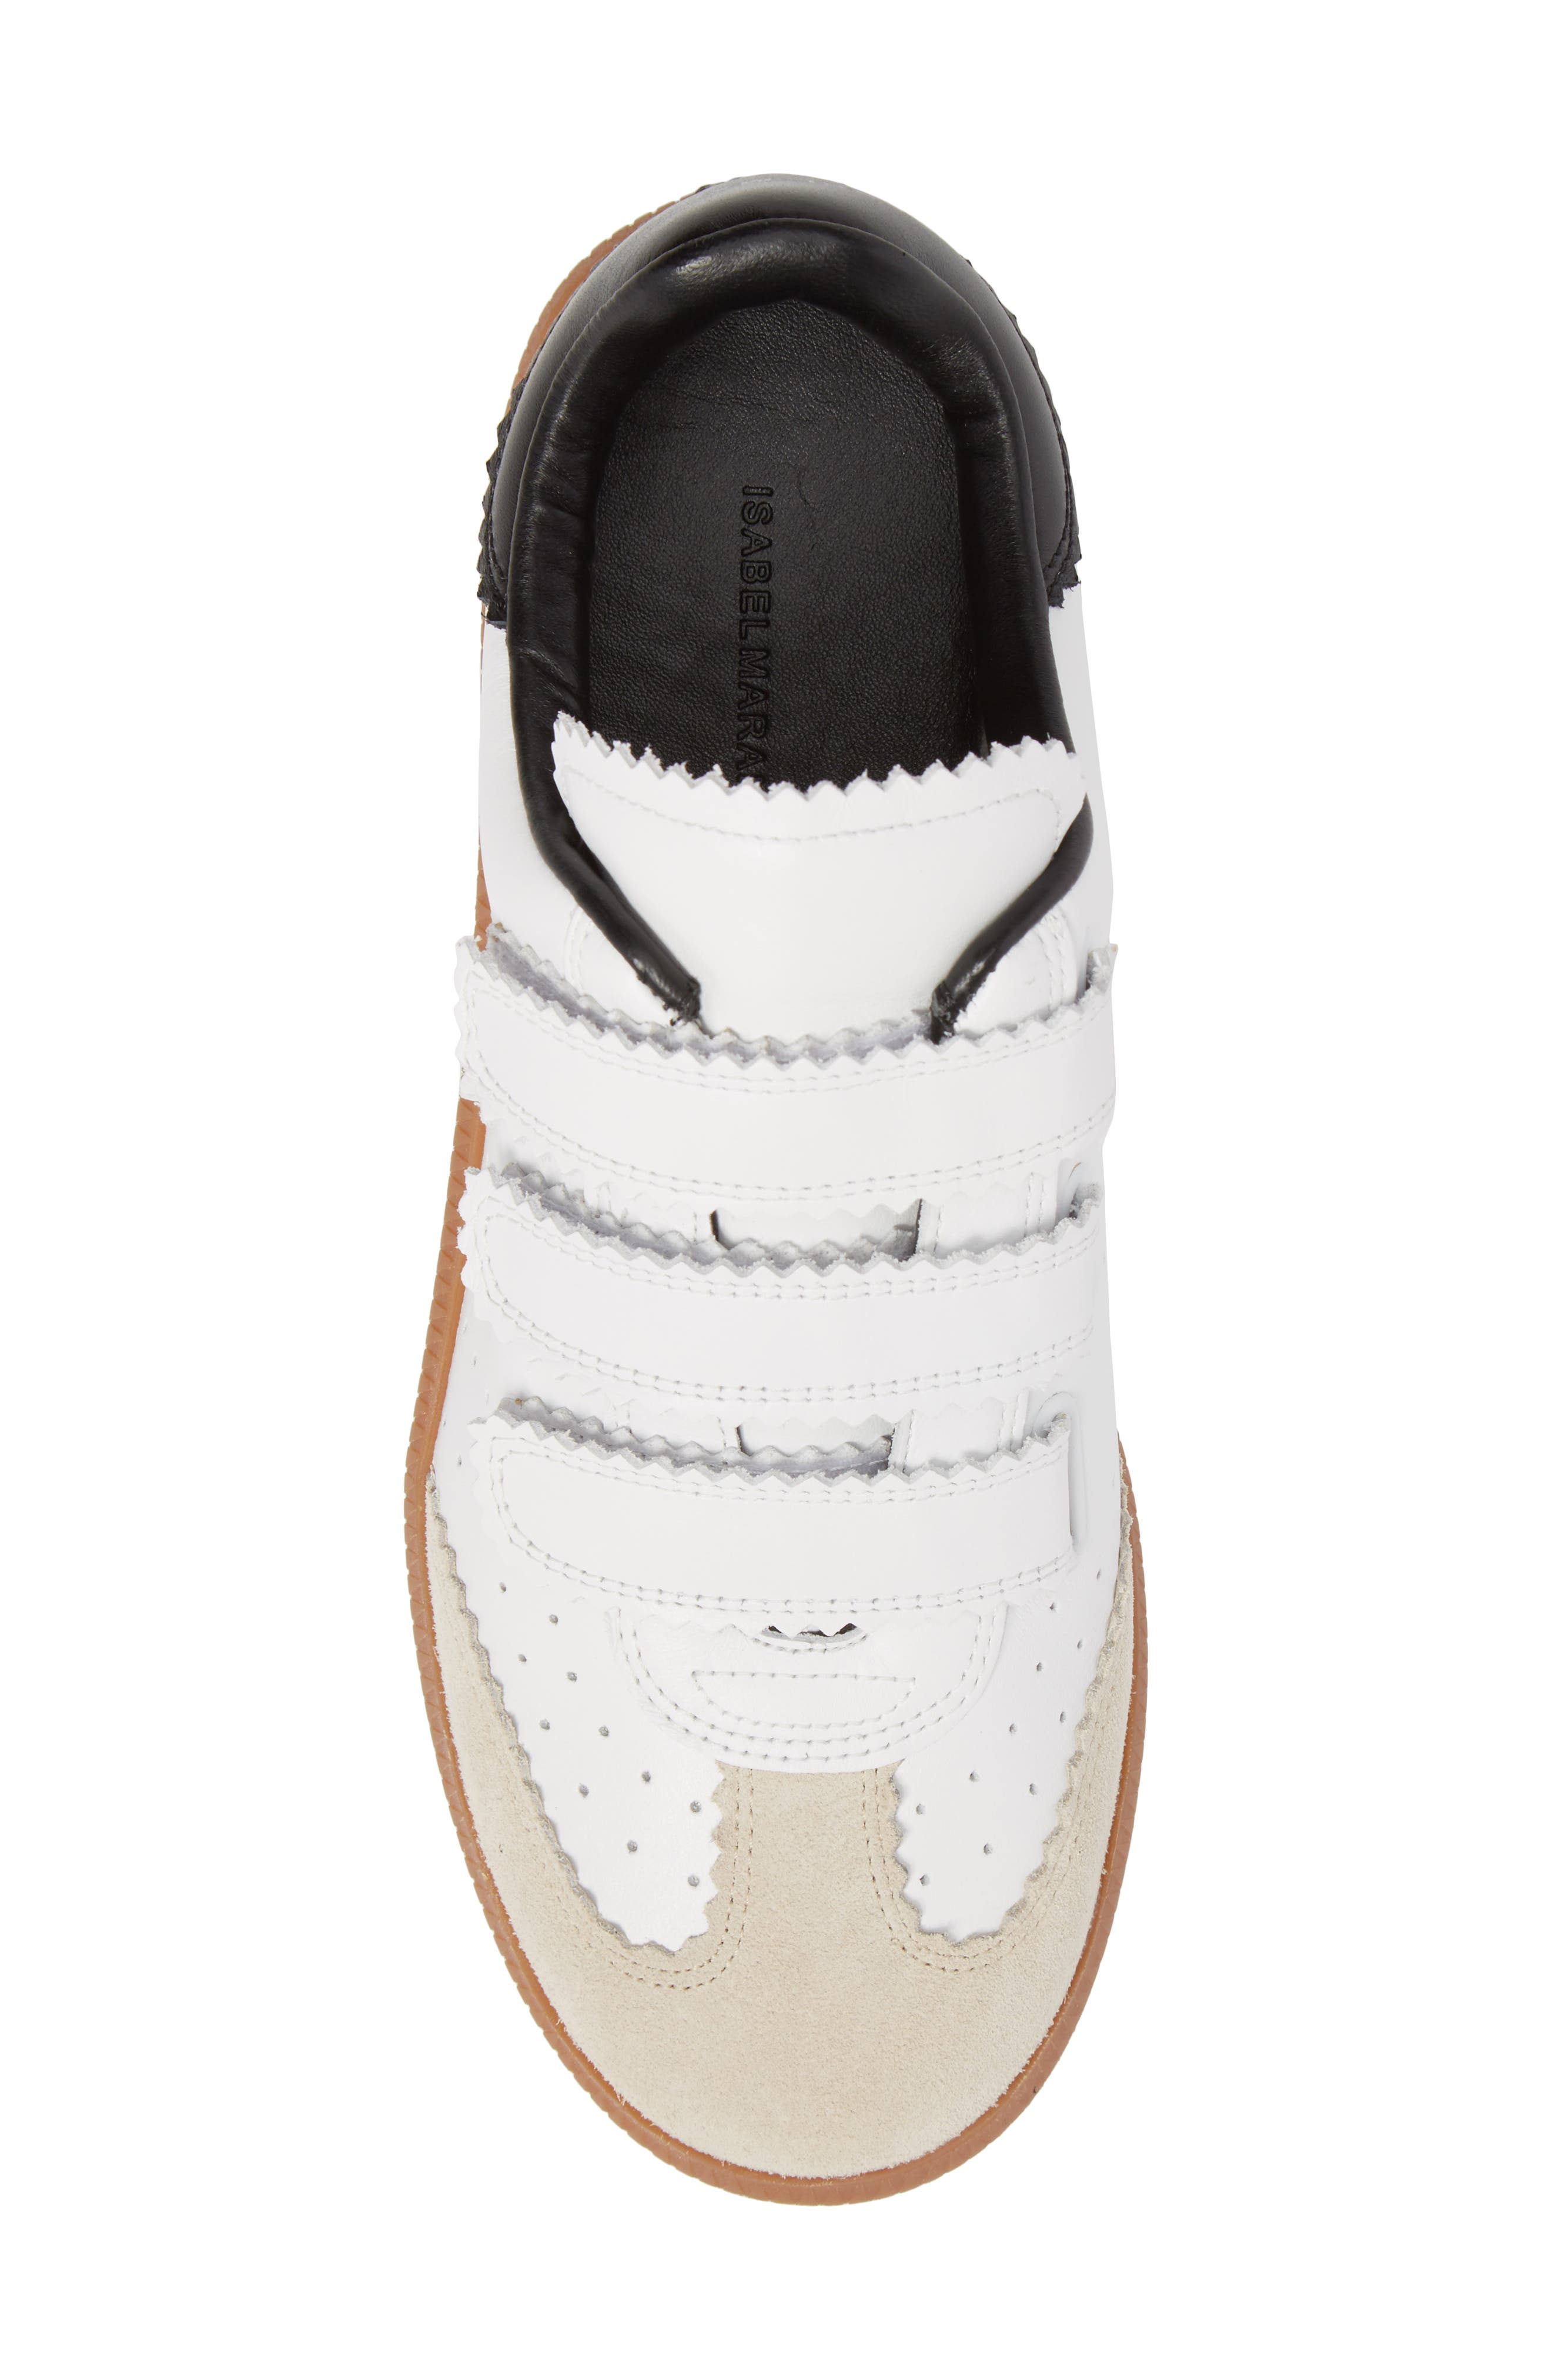 Isabel Marant Beth Low Top Sneaker,                             Alternate thumbnail 5, color,                             White